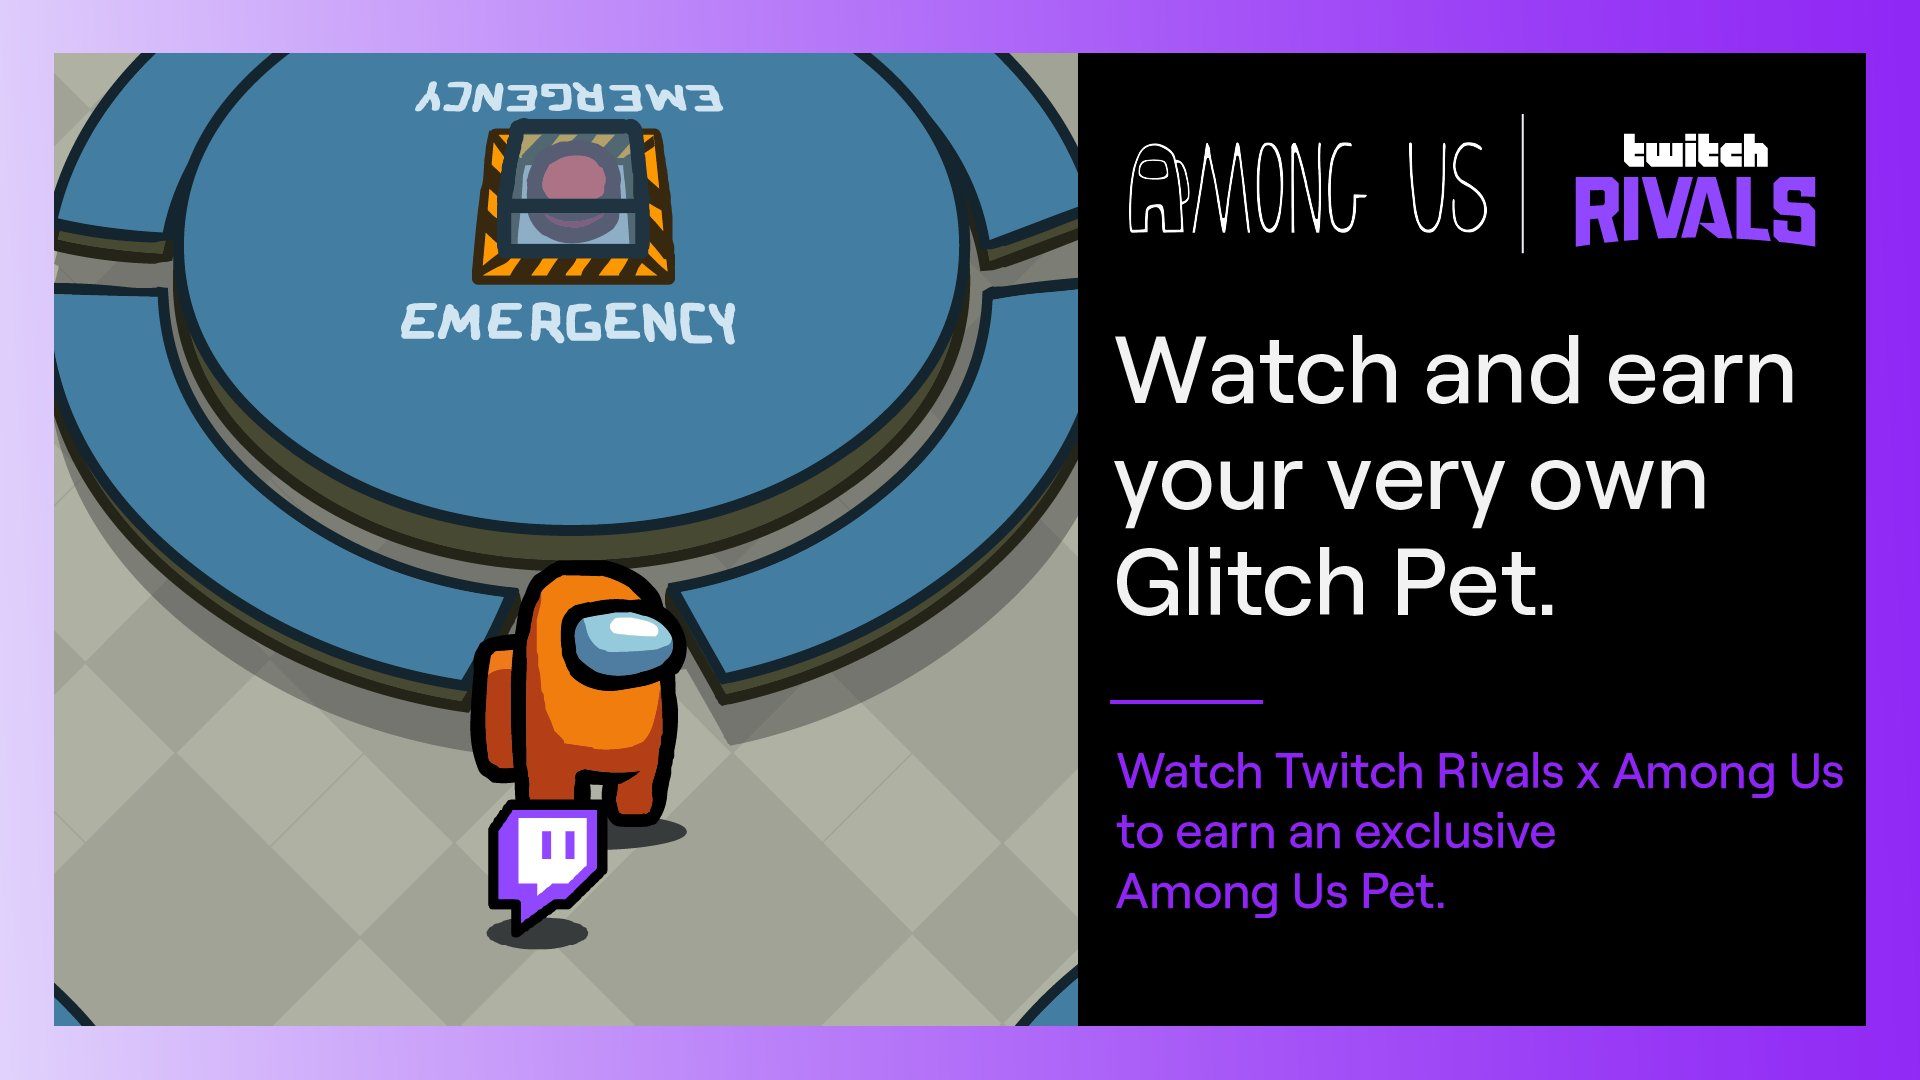 Among Us Glitch pet from Twitch Rivals